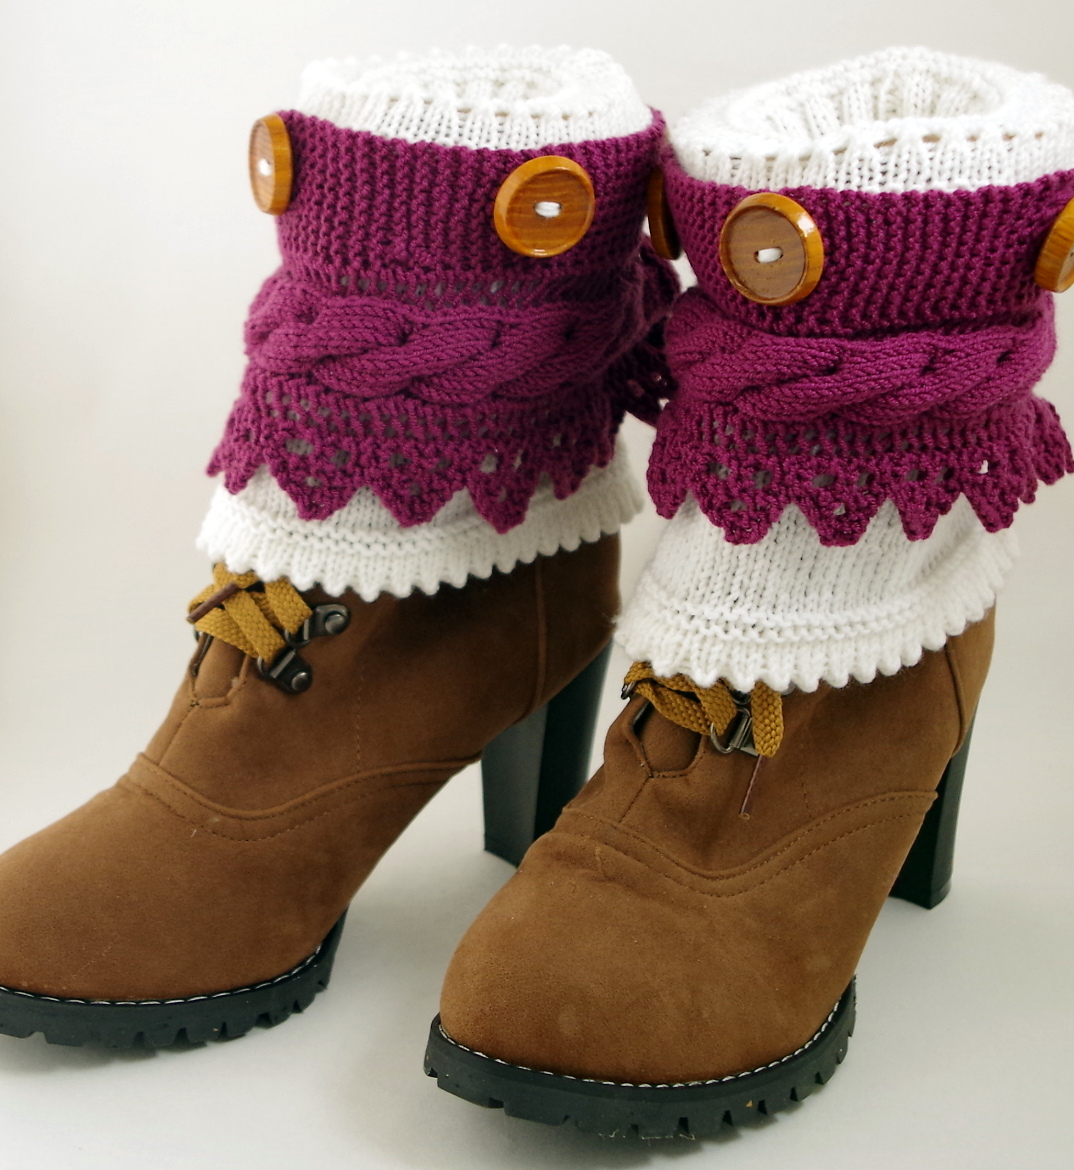 Free Knitting Patterns For Boot Toppers Boot Cuff Knitting Patterns In The Loop Knitting